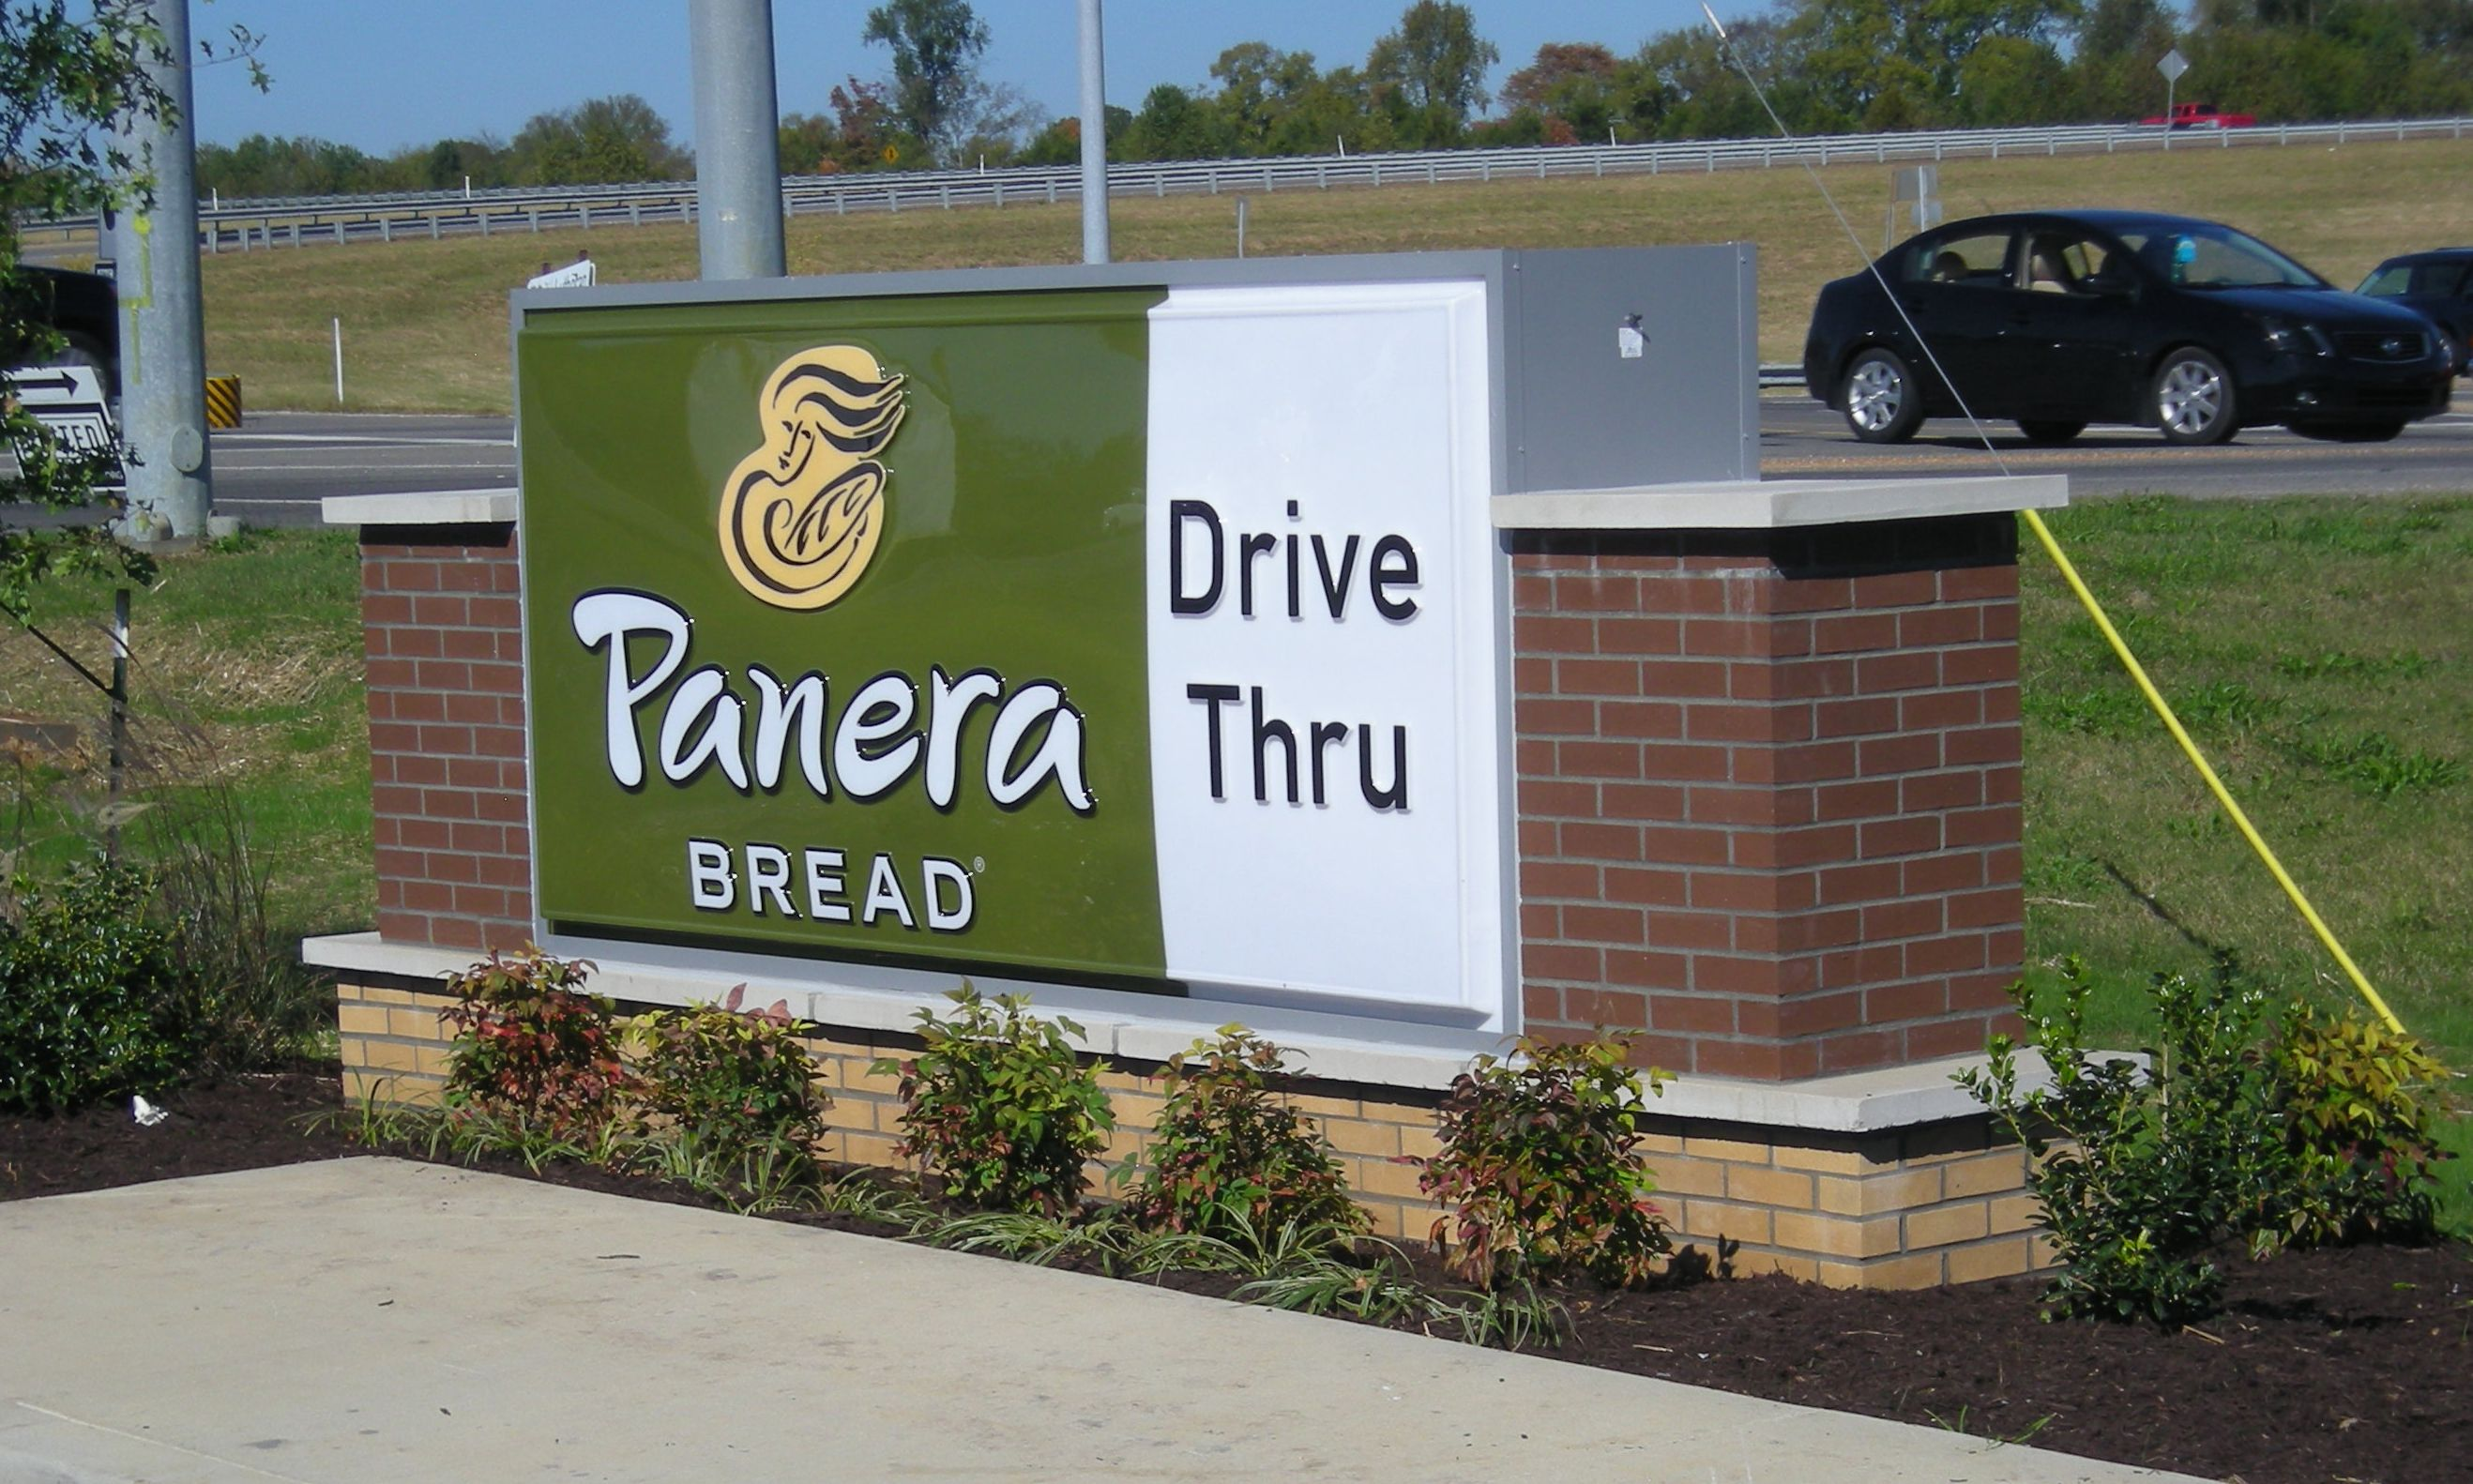 Related image Food branding, Outdoor decor, Panera